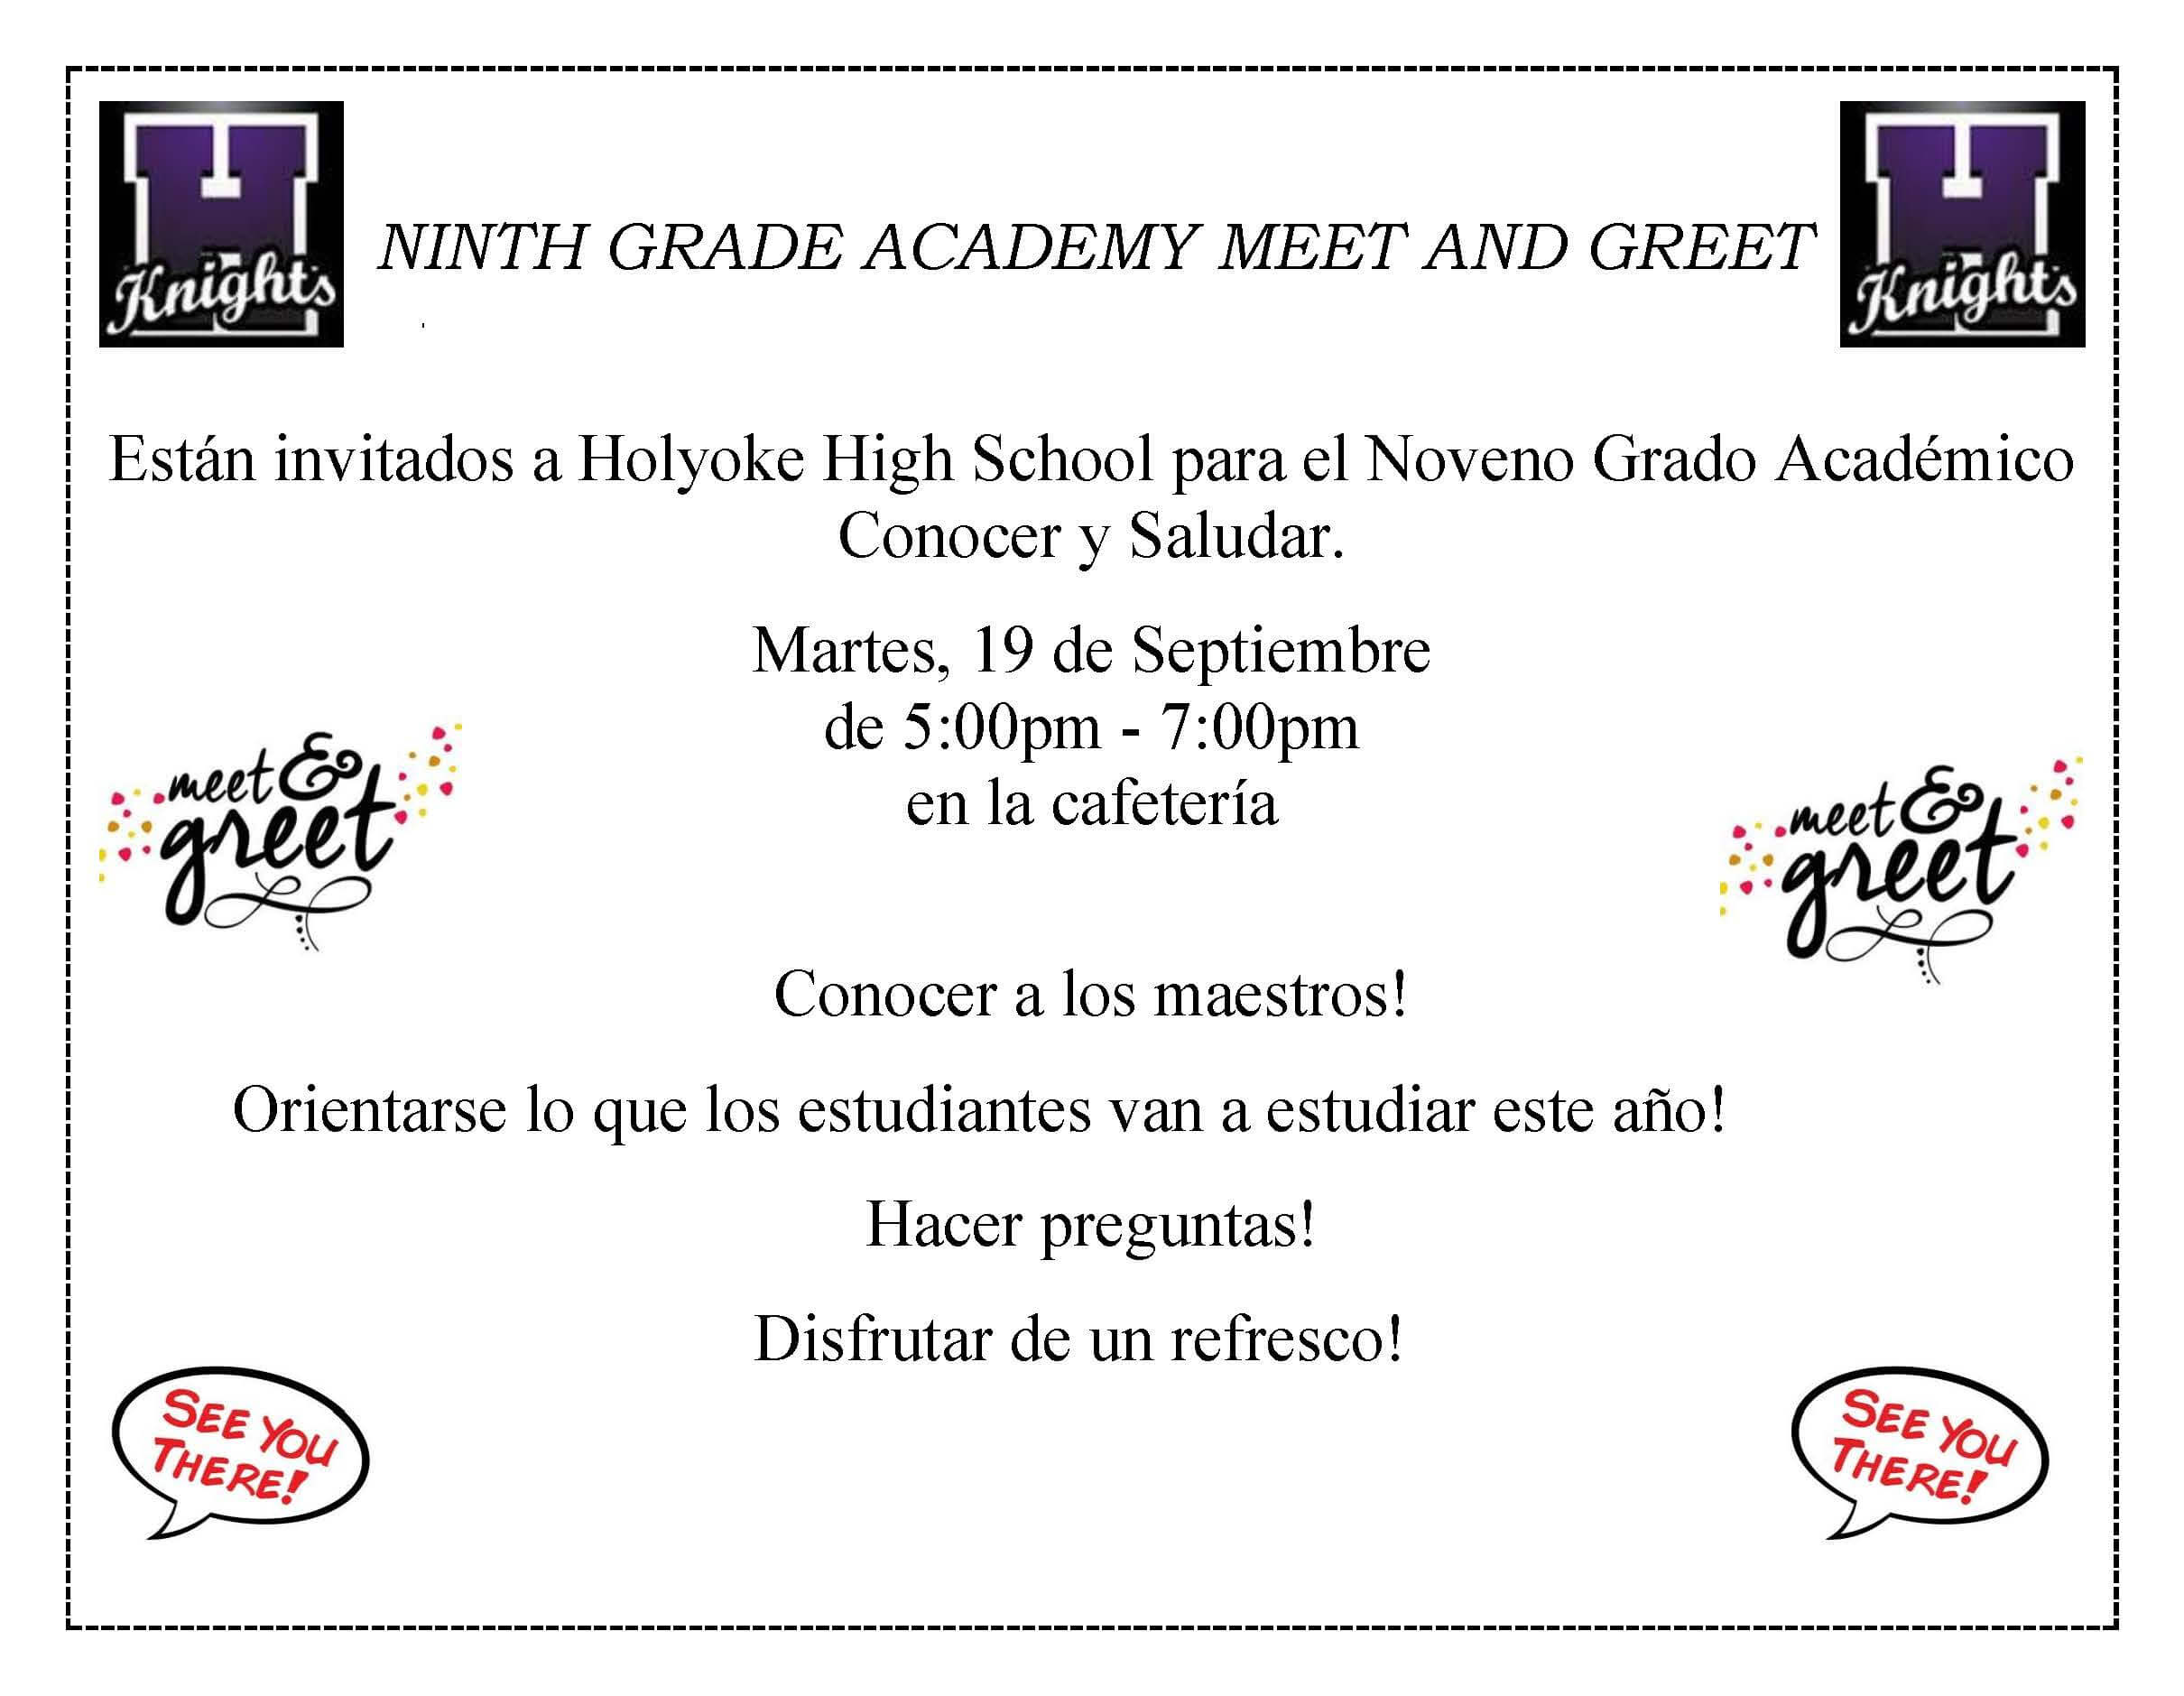 Ninth grade academy meet and greet tuesday september 19th from 5 9th grade academy meet and greet spanish kristyandbryce Image collections